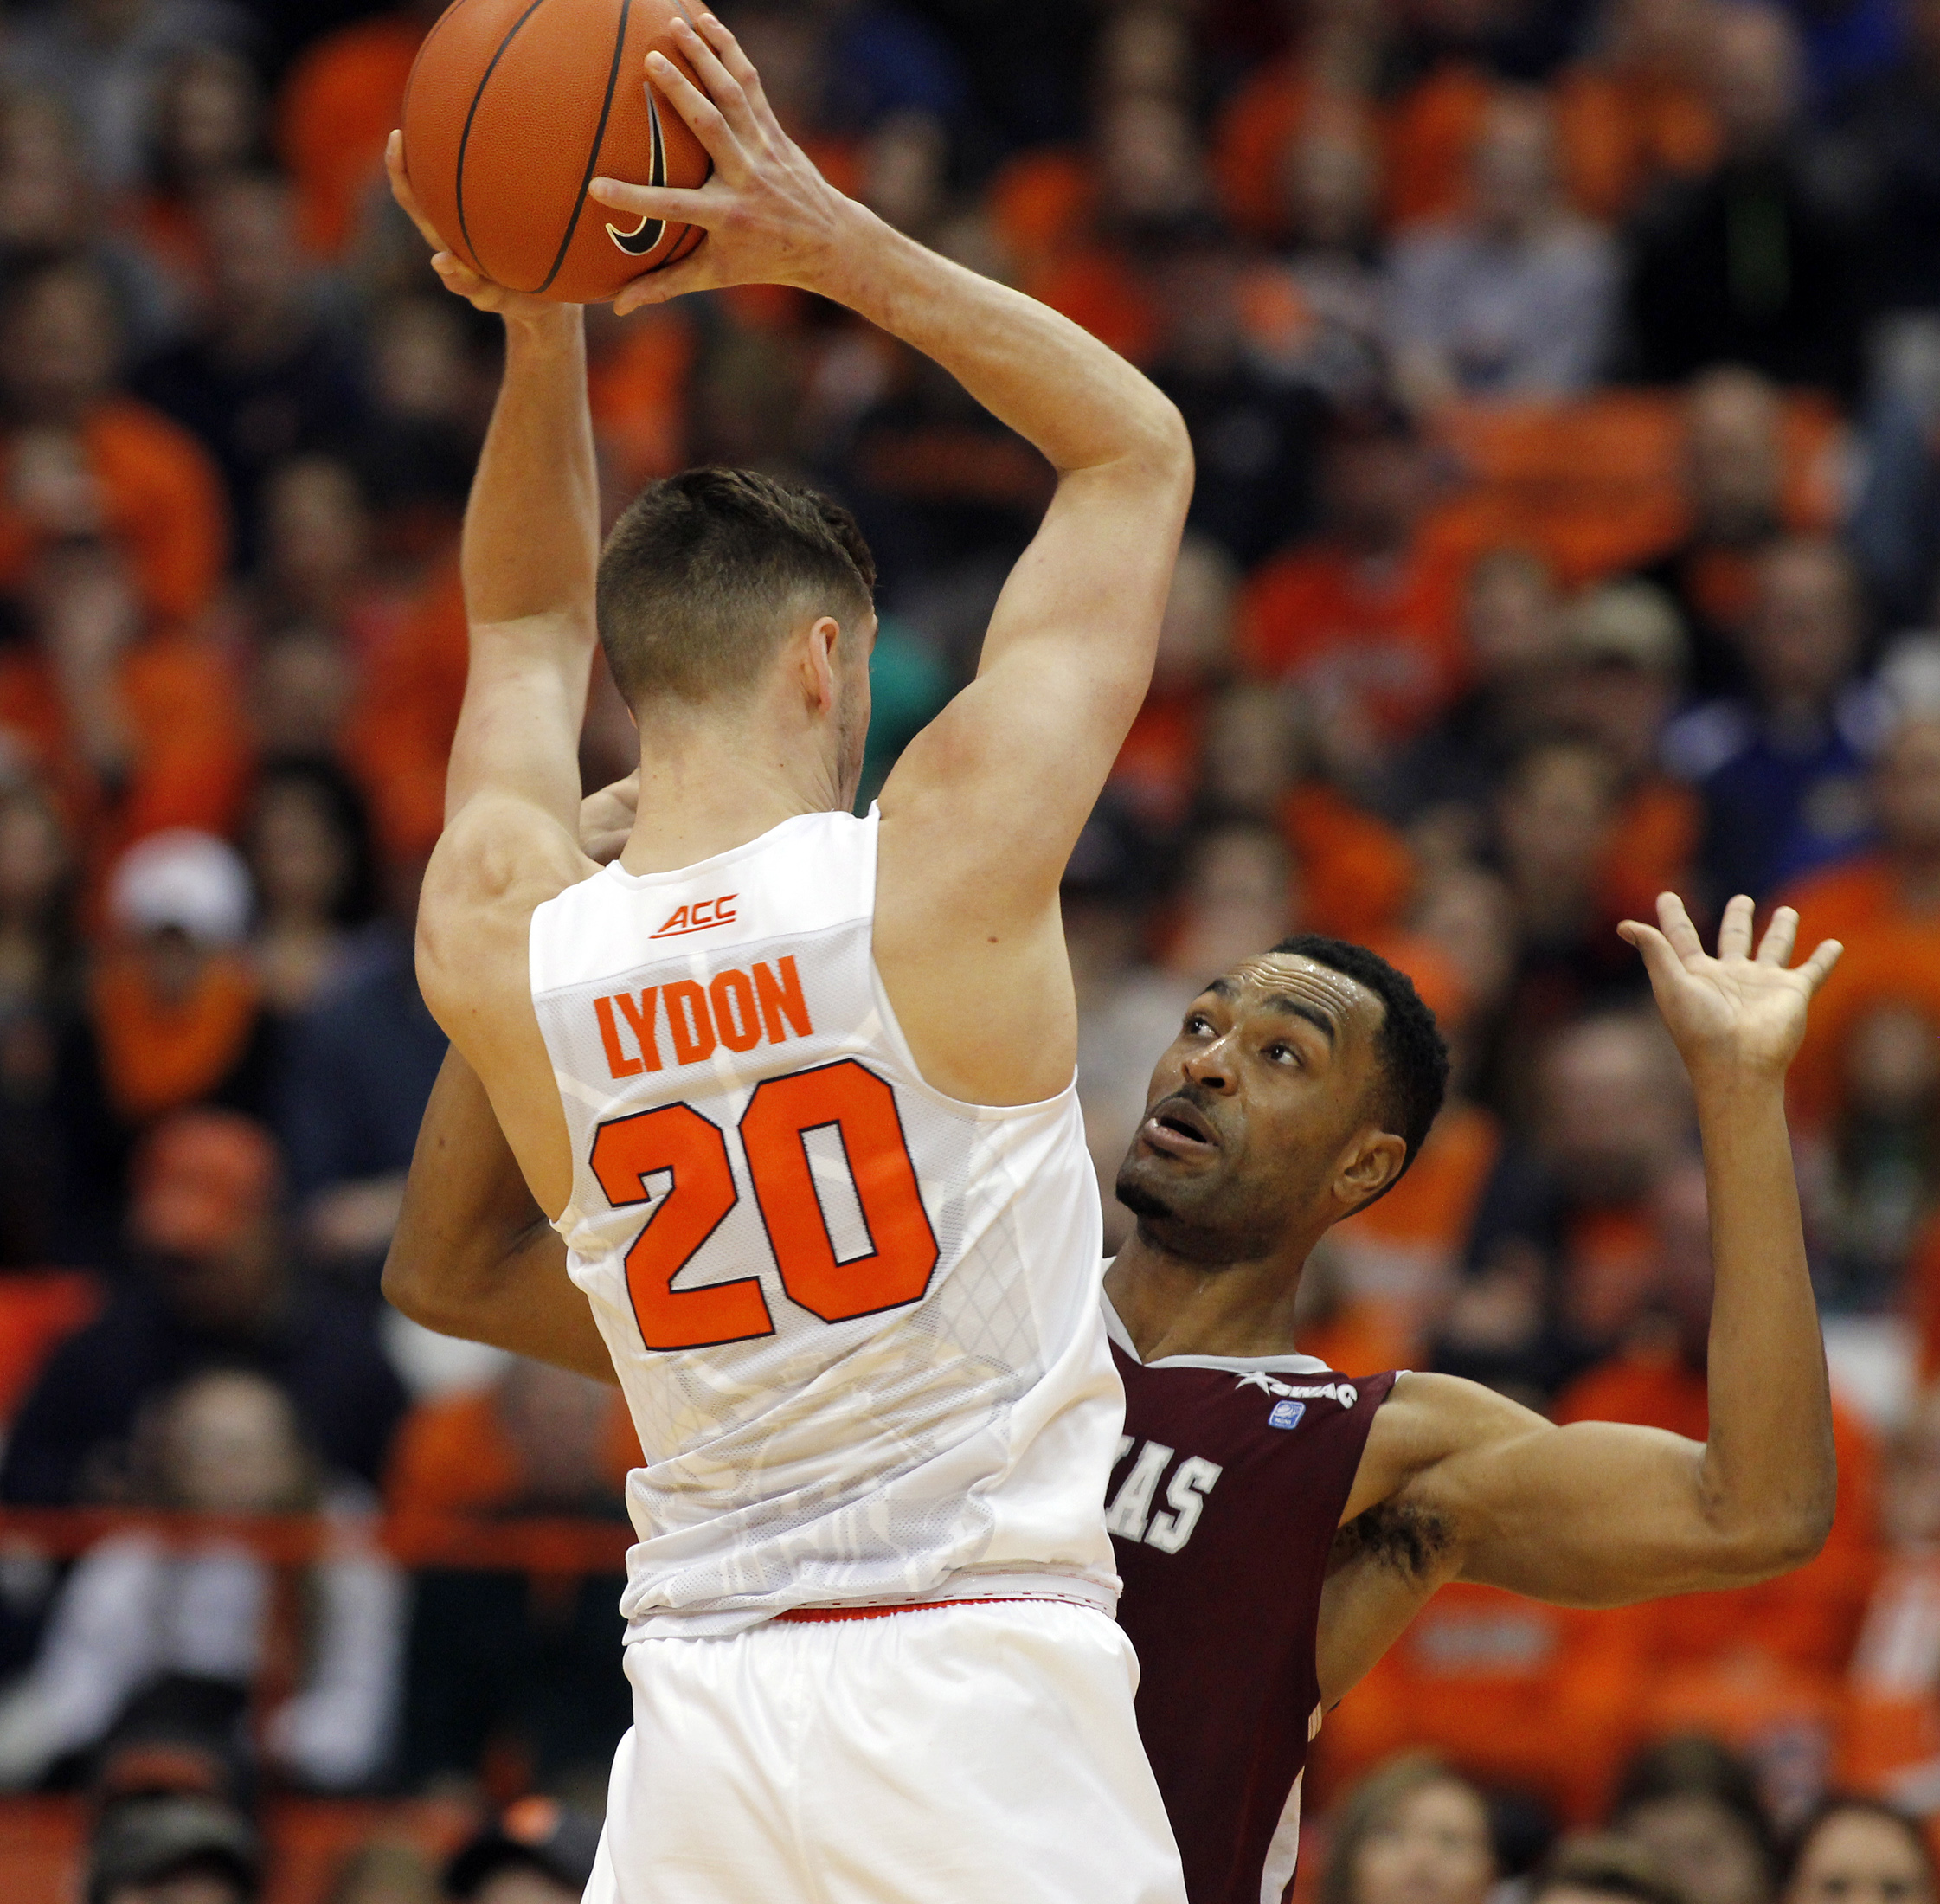 Syracuse's Tyler Lydon, left, looks to pass the ball under pressure from Texas Southern's Malcolm Riley, right, in the first half of an NCAA college basketball game in Syracuse, N.Y., Sunday, Dec. 27, 2015. (AP Photo/Nick Lisi)